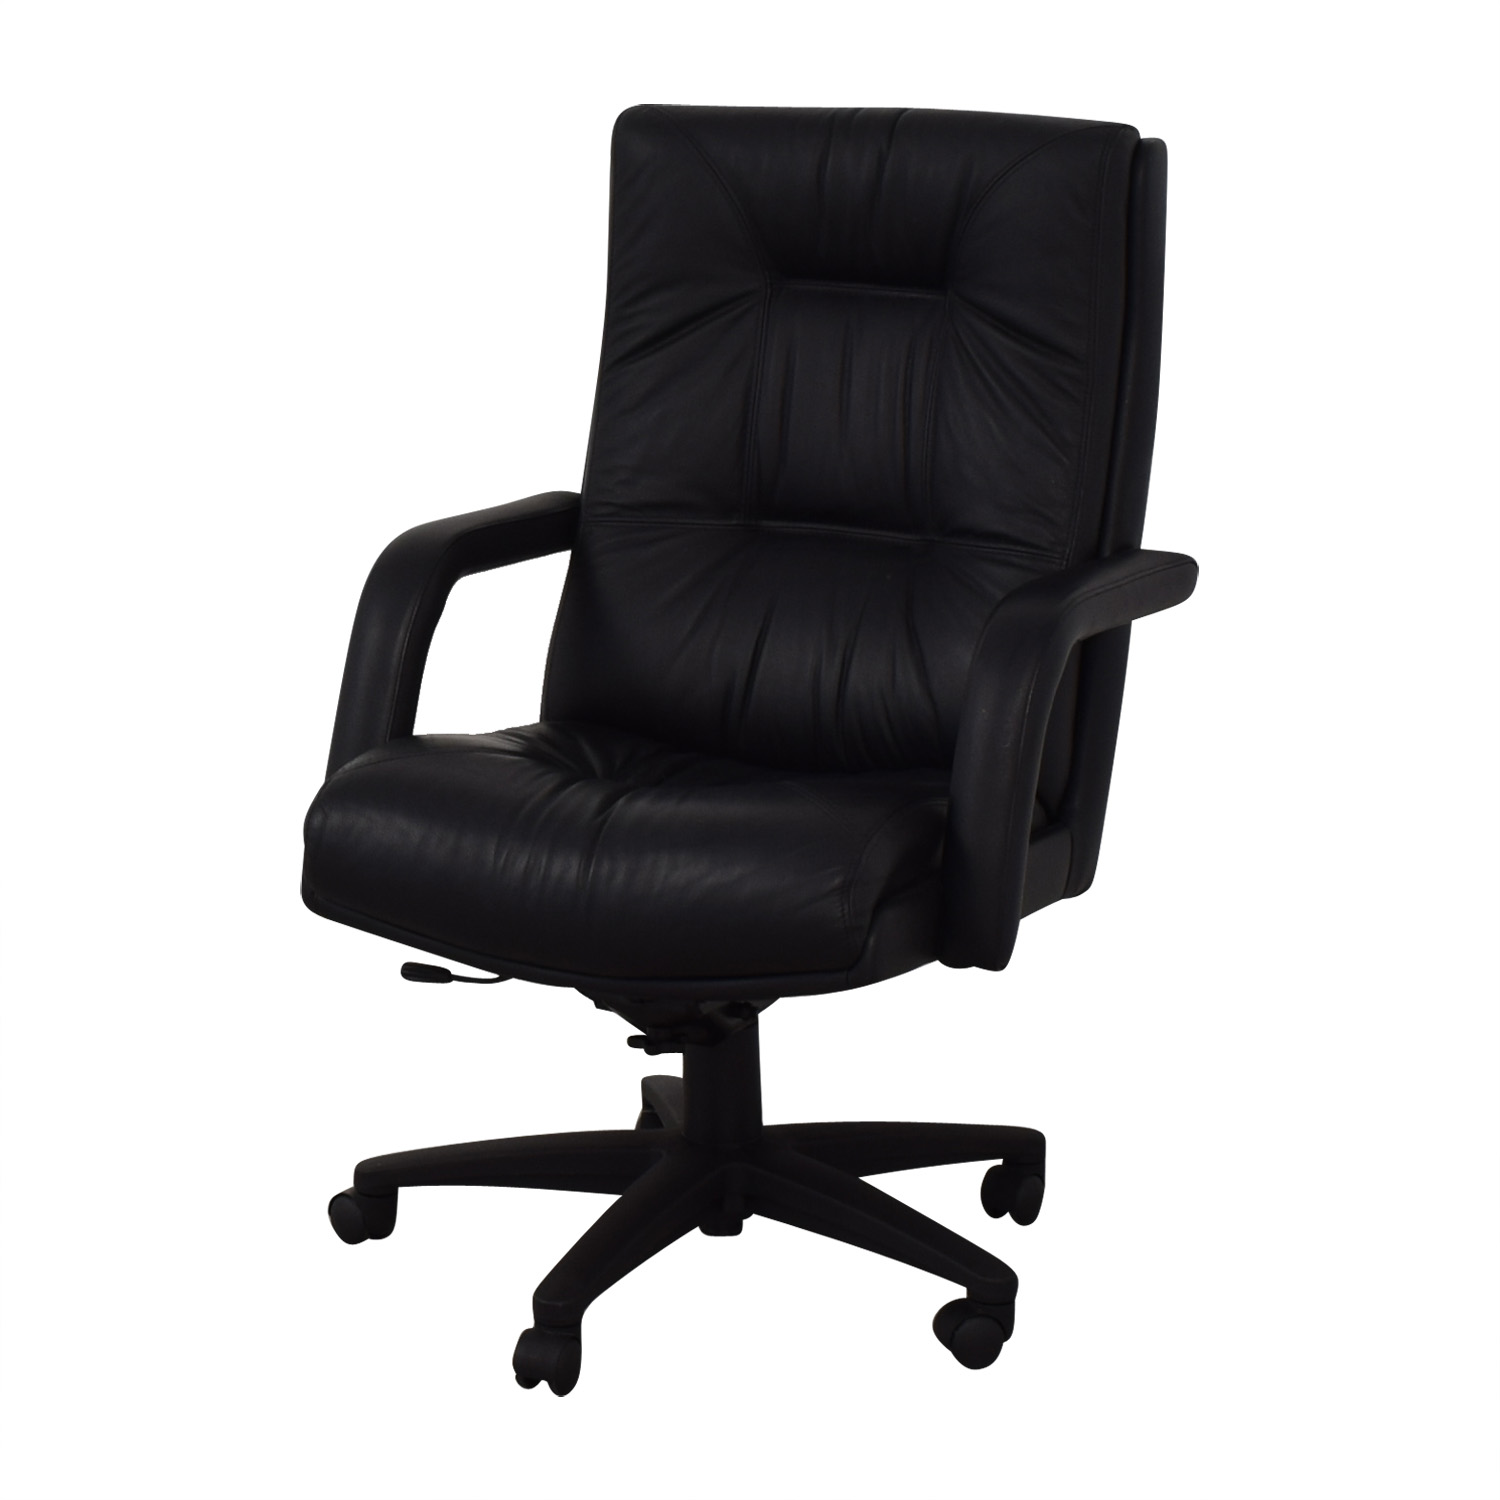 Office Chair with Armrests for sale